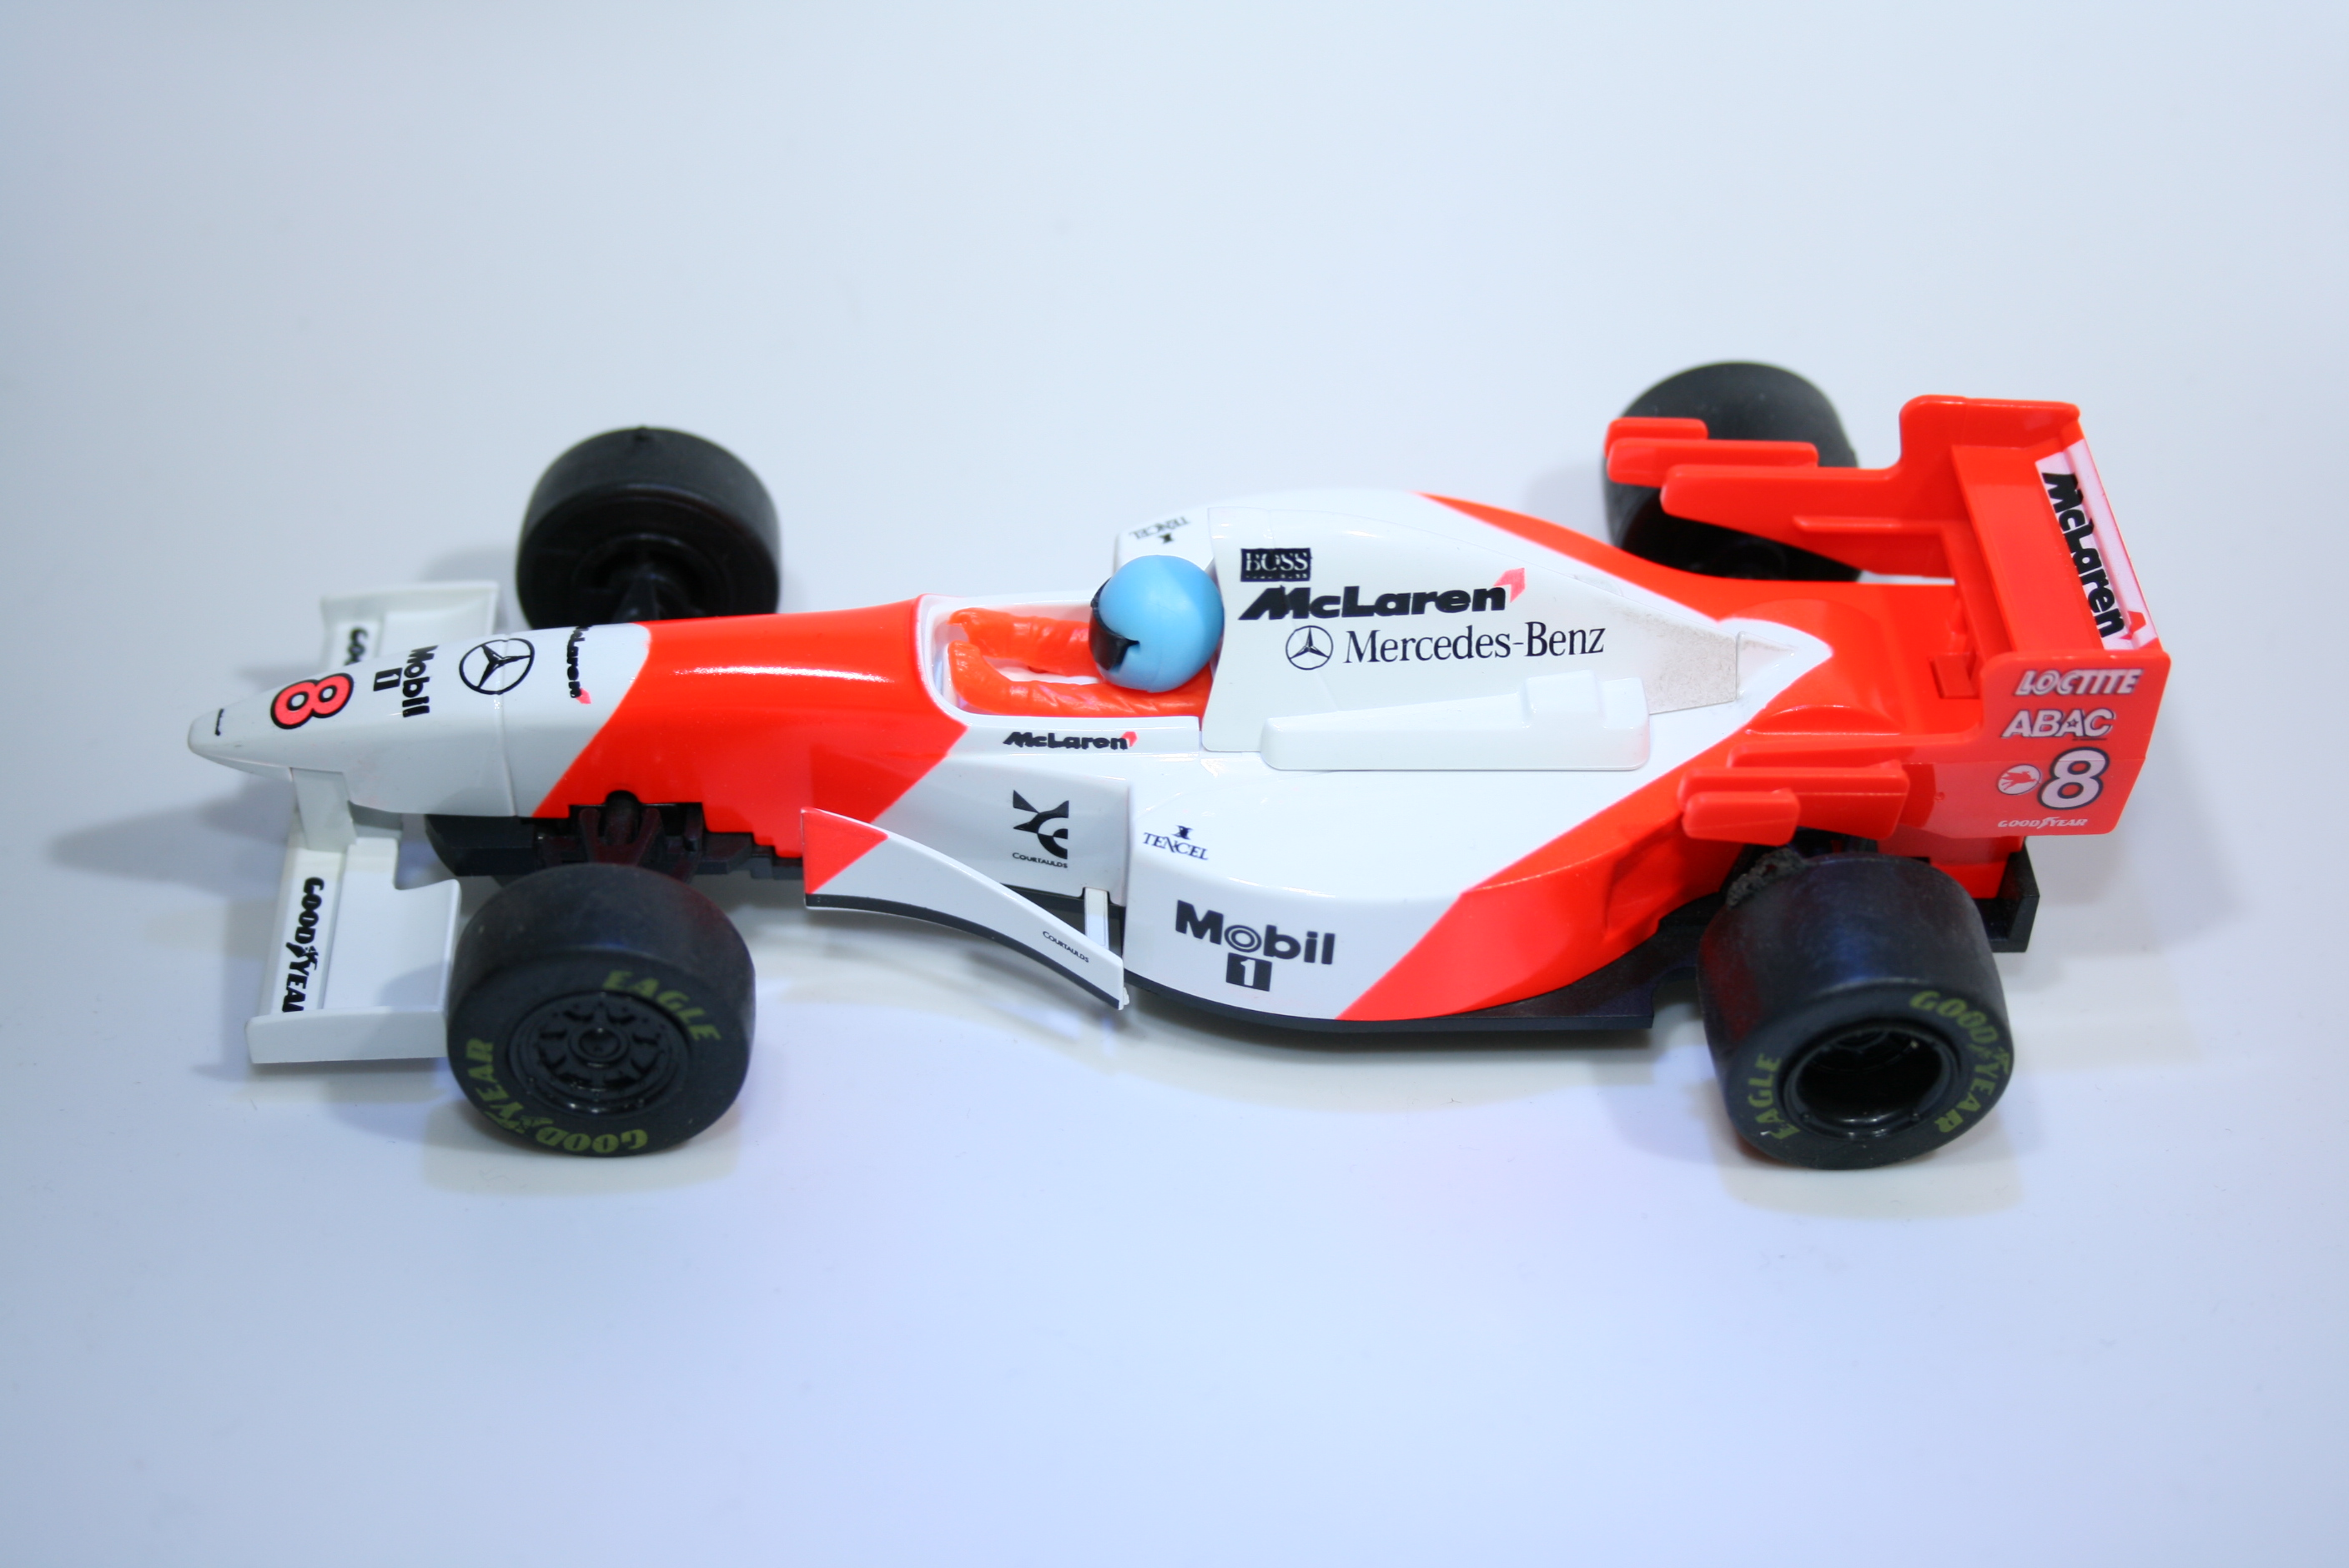 40 Mclaren MP4/10 1995 M Hakkinen Scalextric C2004 1997 Boxed